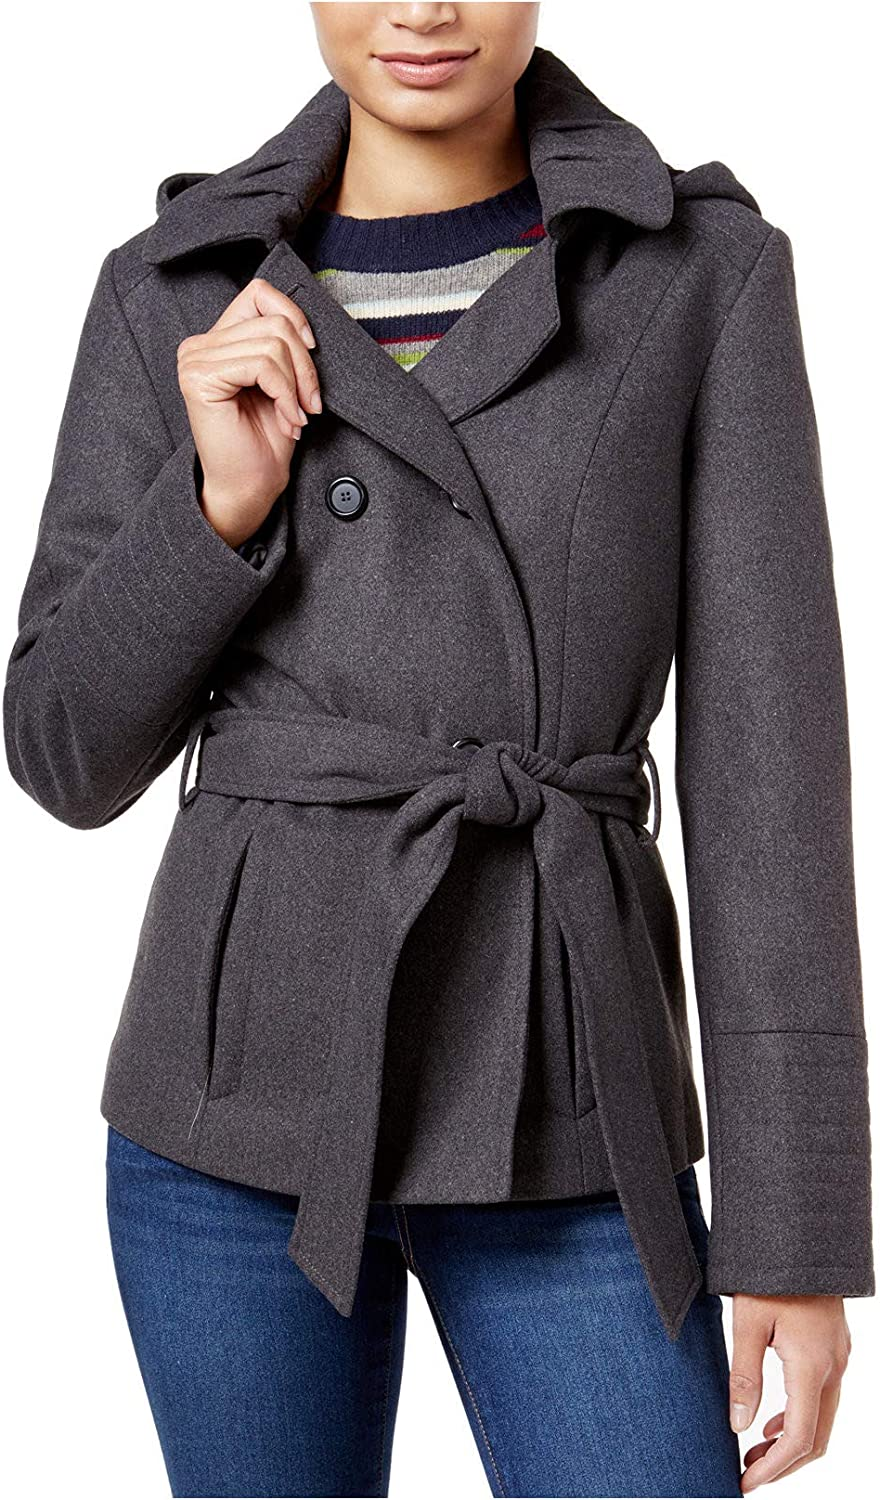 CelebrityPink Juniors Hooded Peacoat, Charcoal, XS